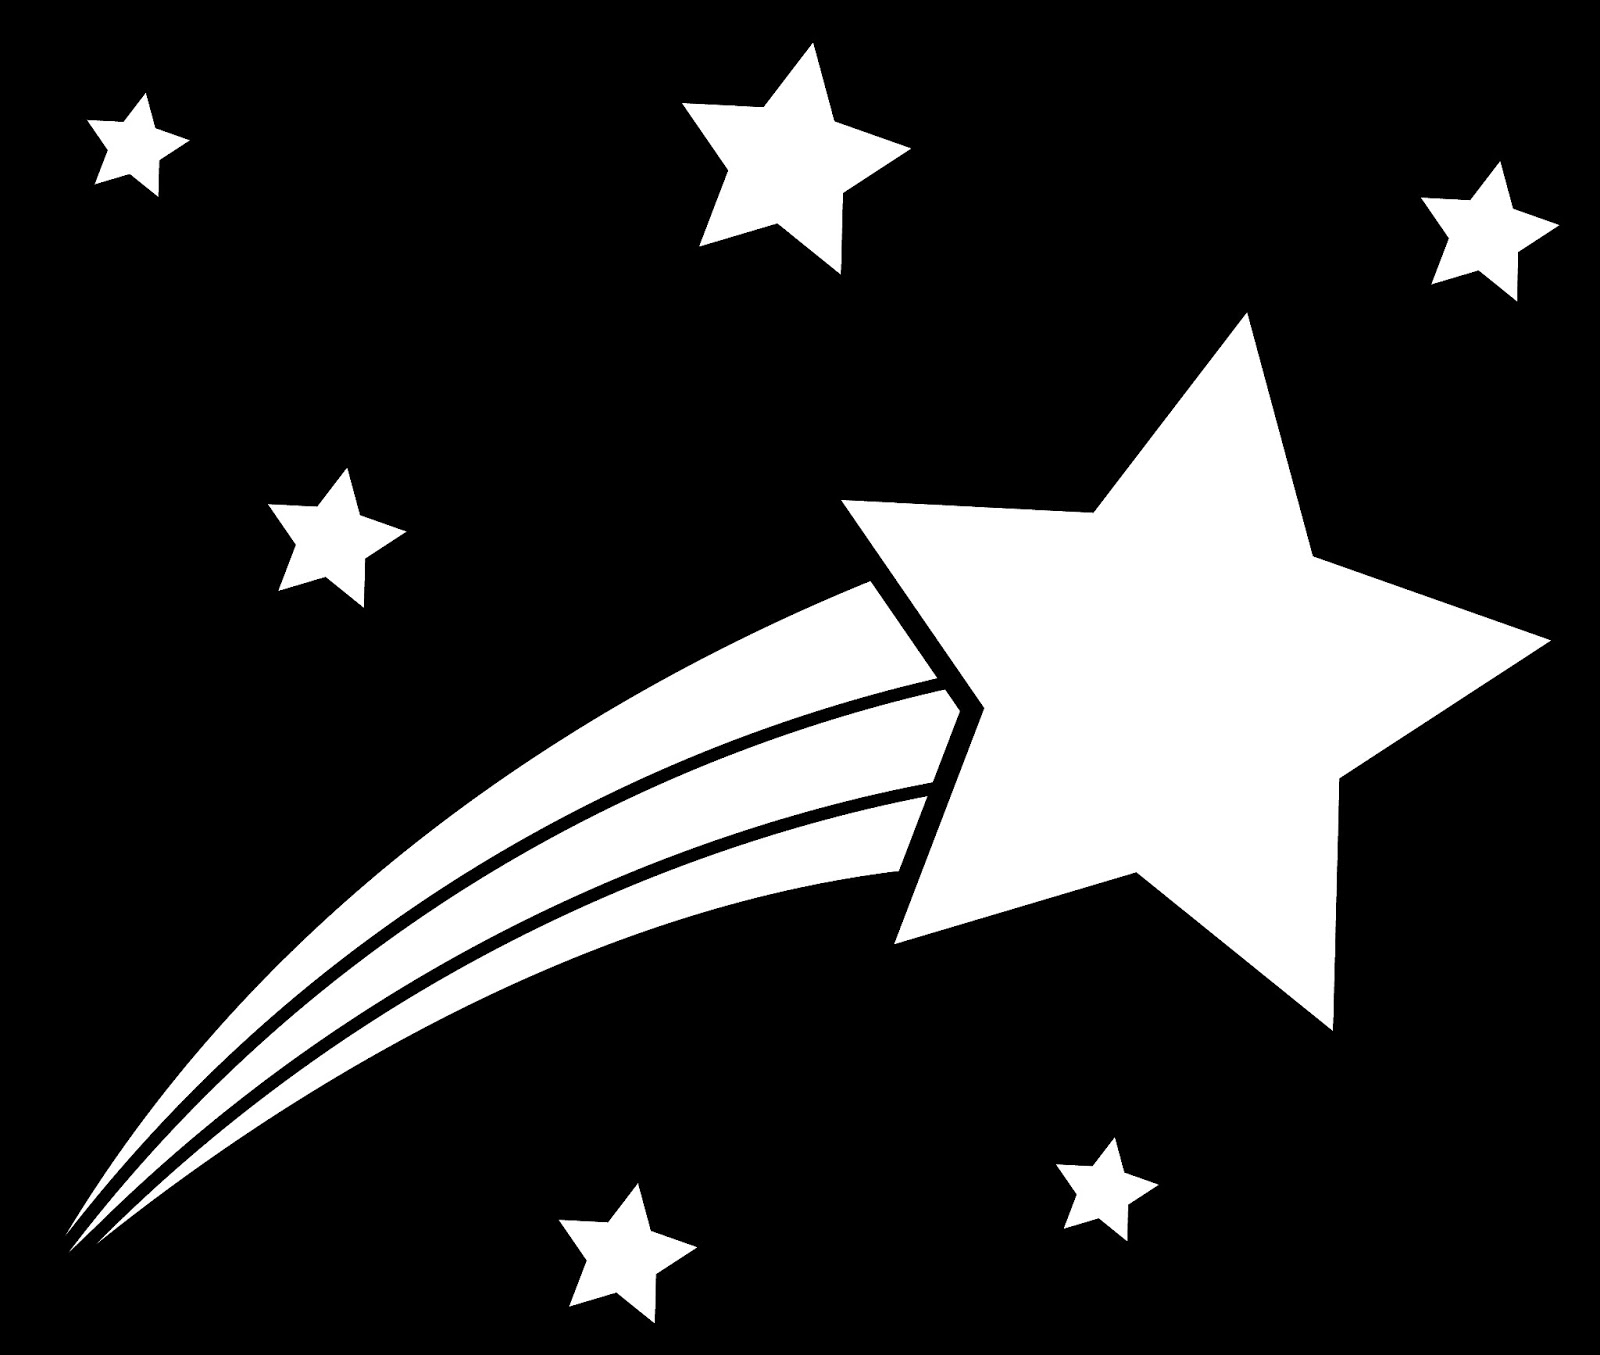 Shooting Star Clipart Black And White - ClipArt Best